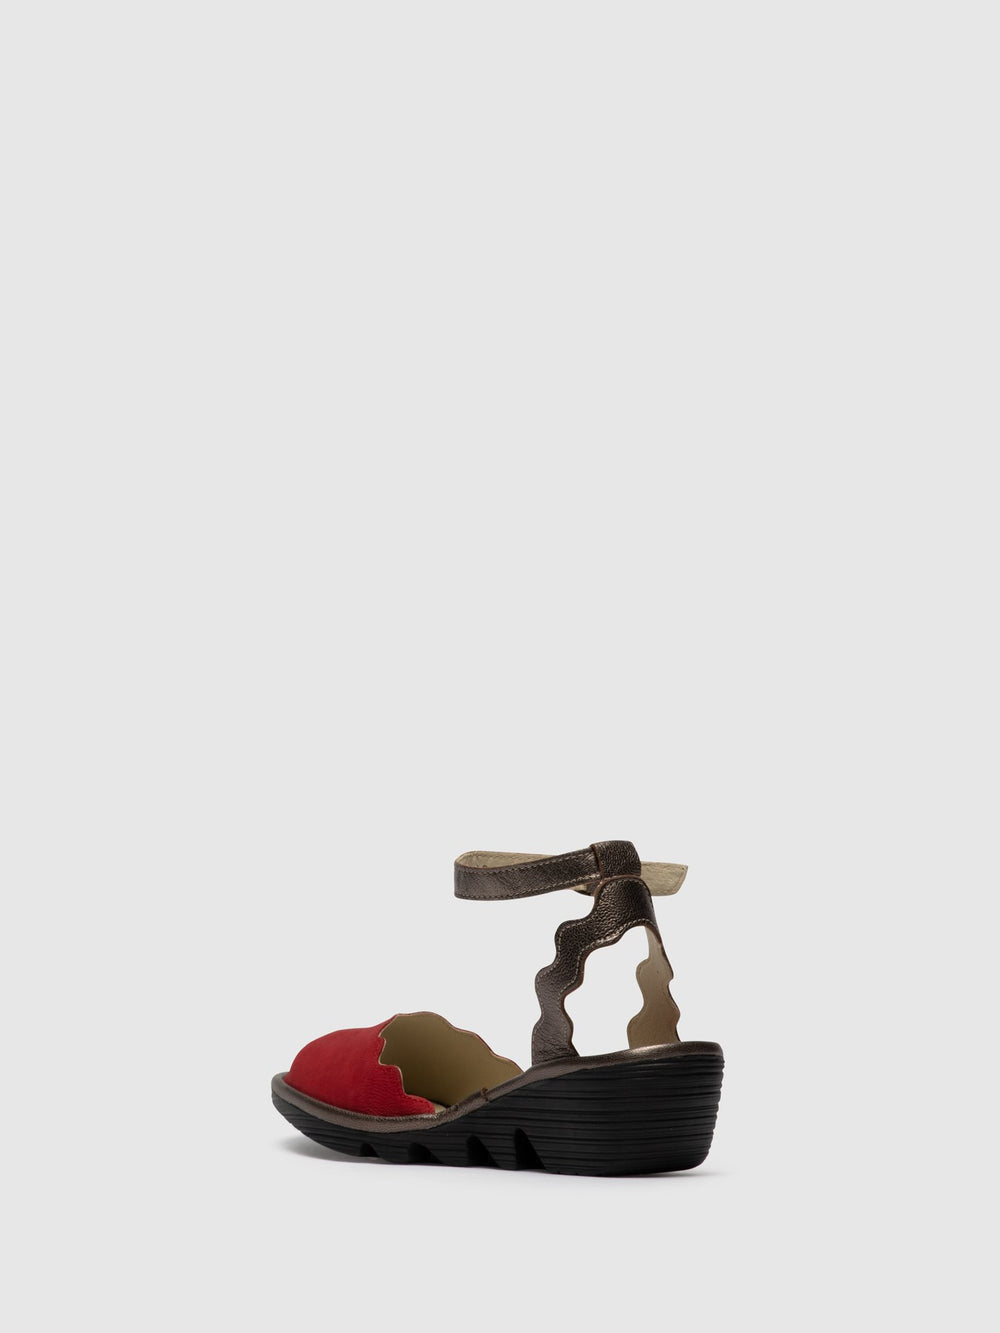 Ankle Strap Sandals PINE192FLY LIPSTICK RED/BRONZE